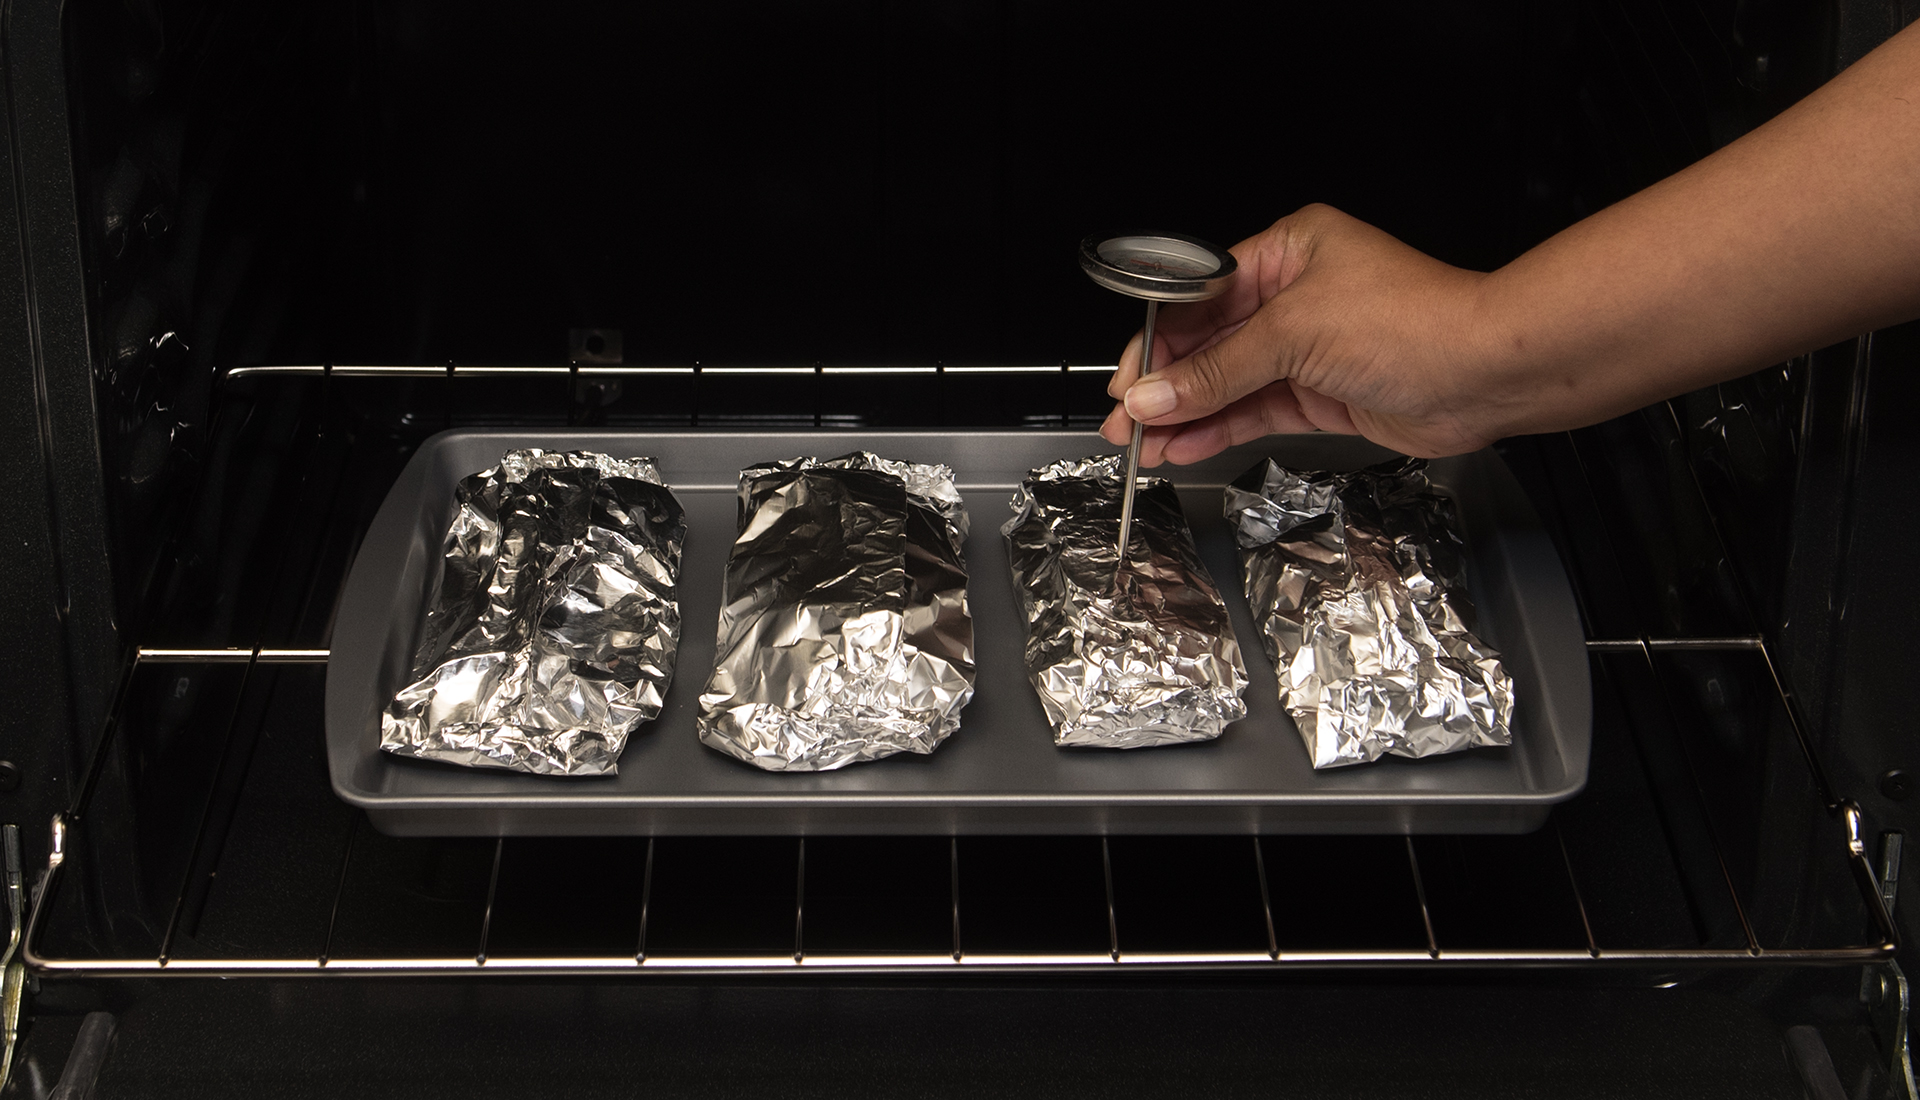 Hand with meat thermometer checking one of four foil-wrapped pieces of meat on baking sheet in oven